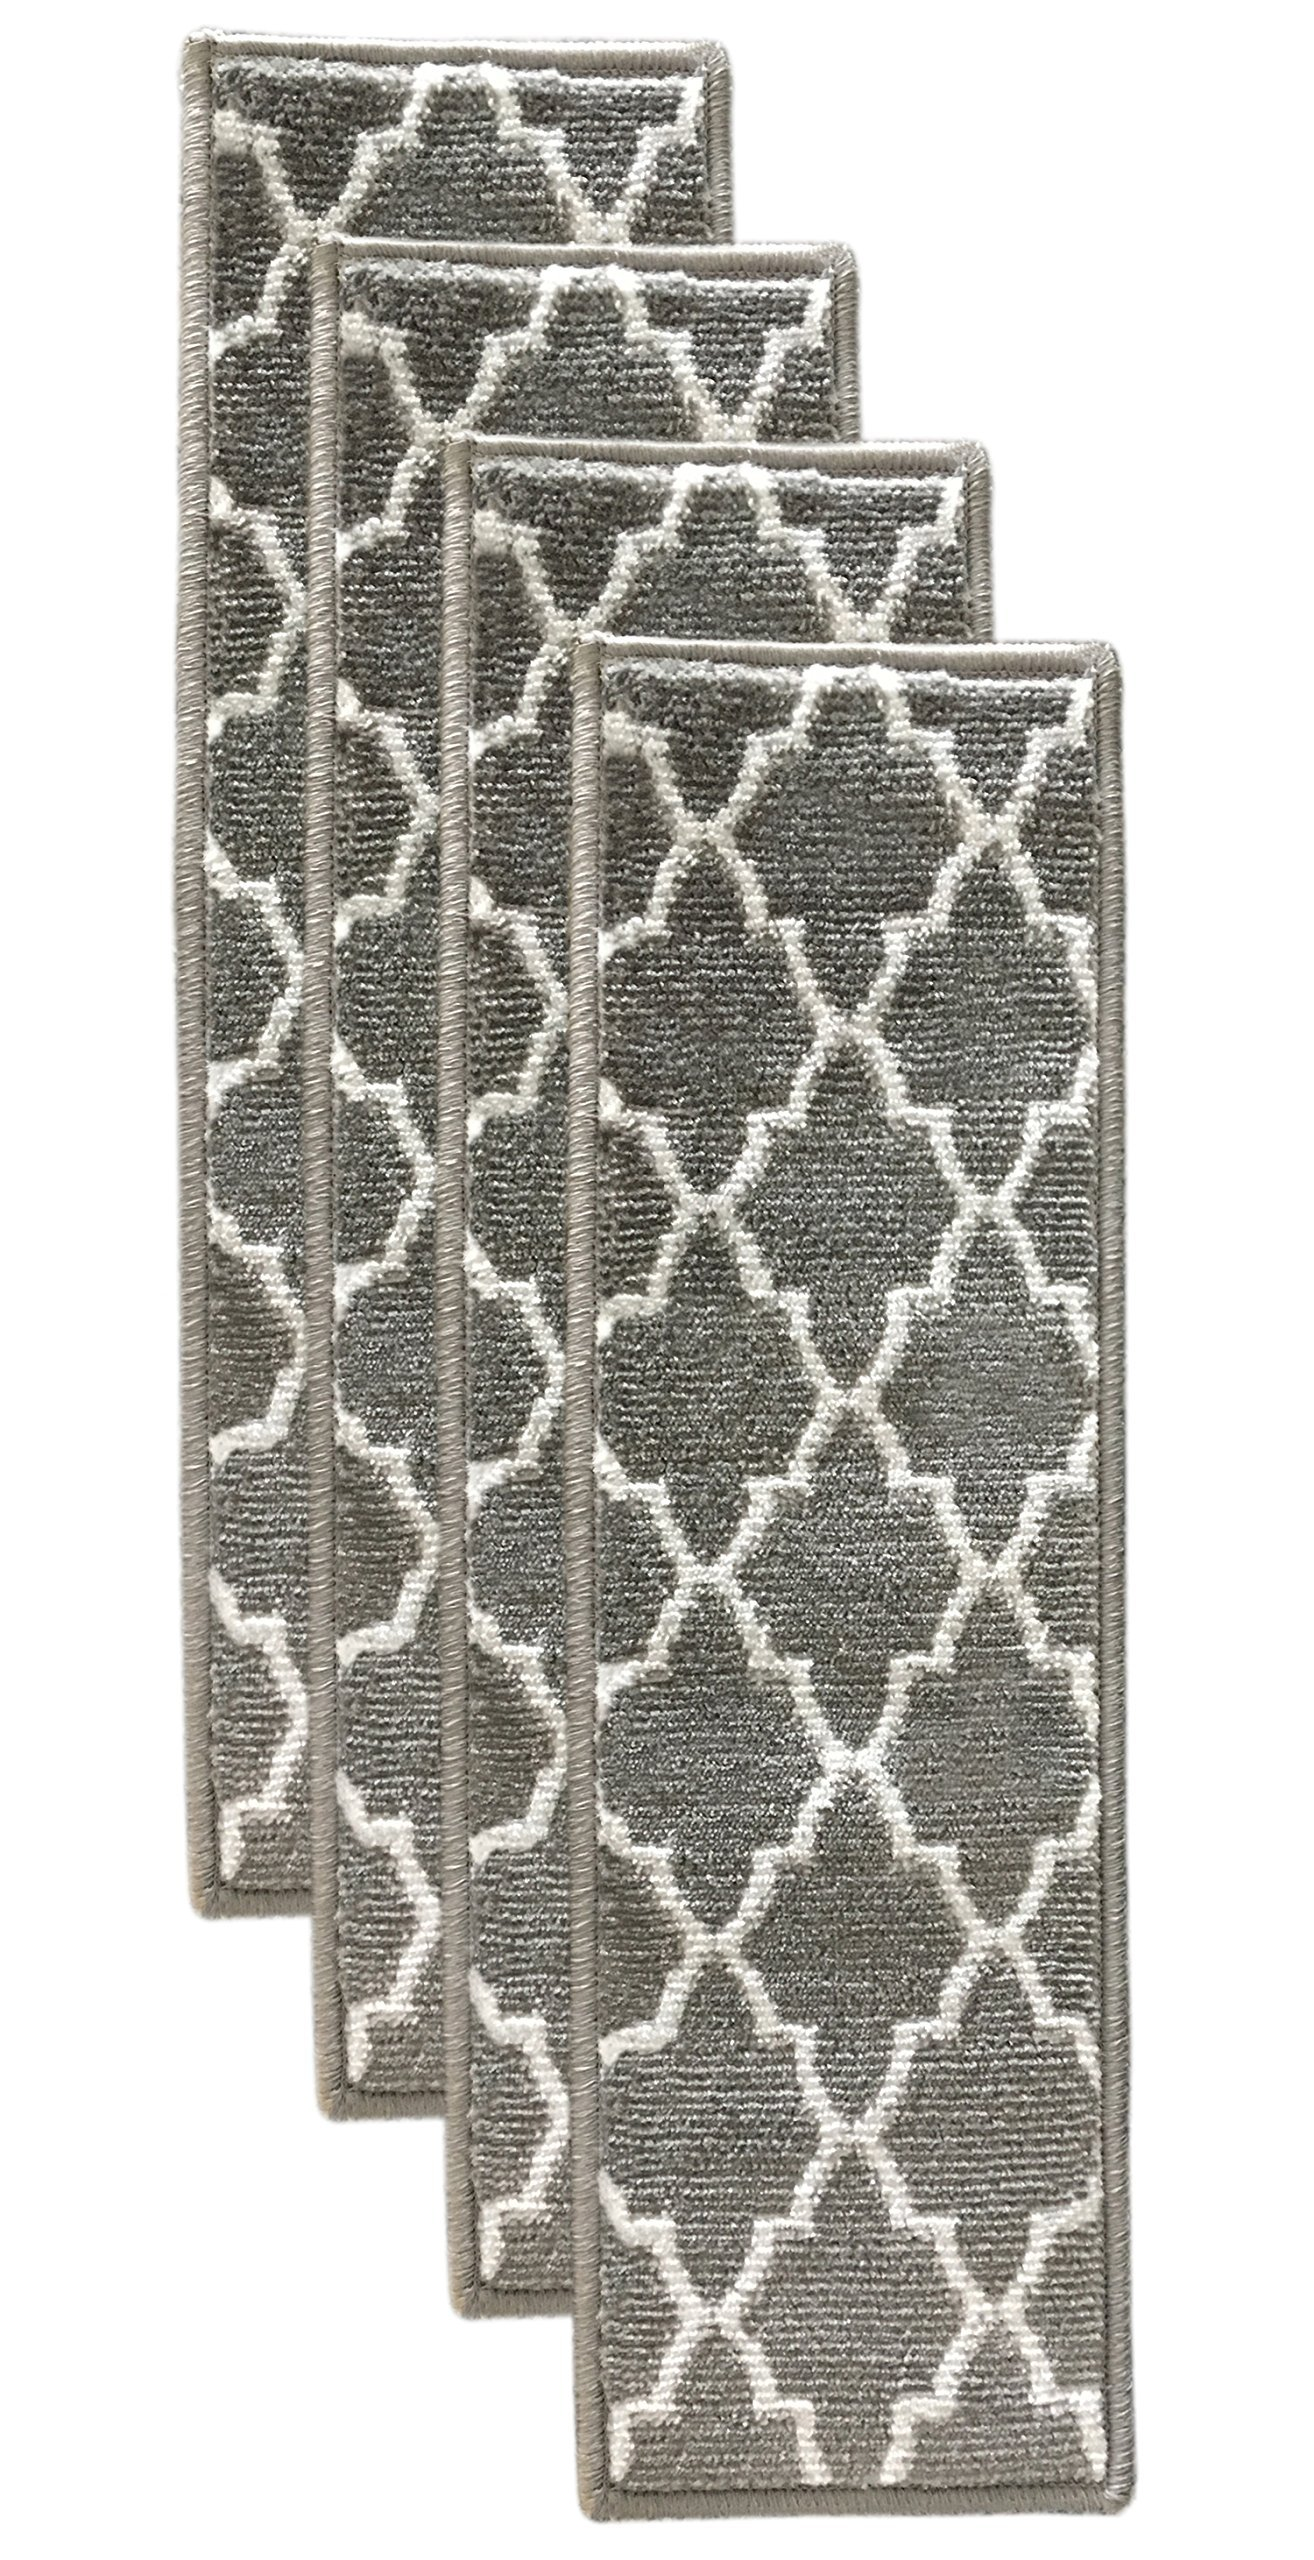 Sultansville Trellisville Collection Trellis Design Vibrant and Soft Stair Treads, Grey, Pack of 4